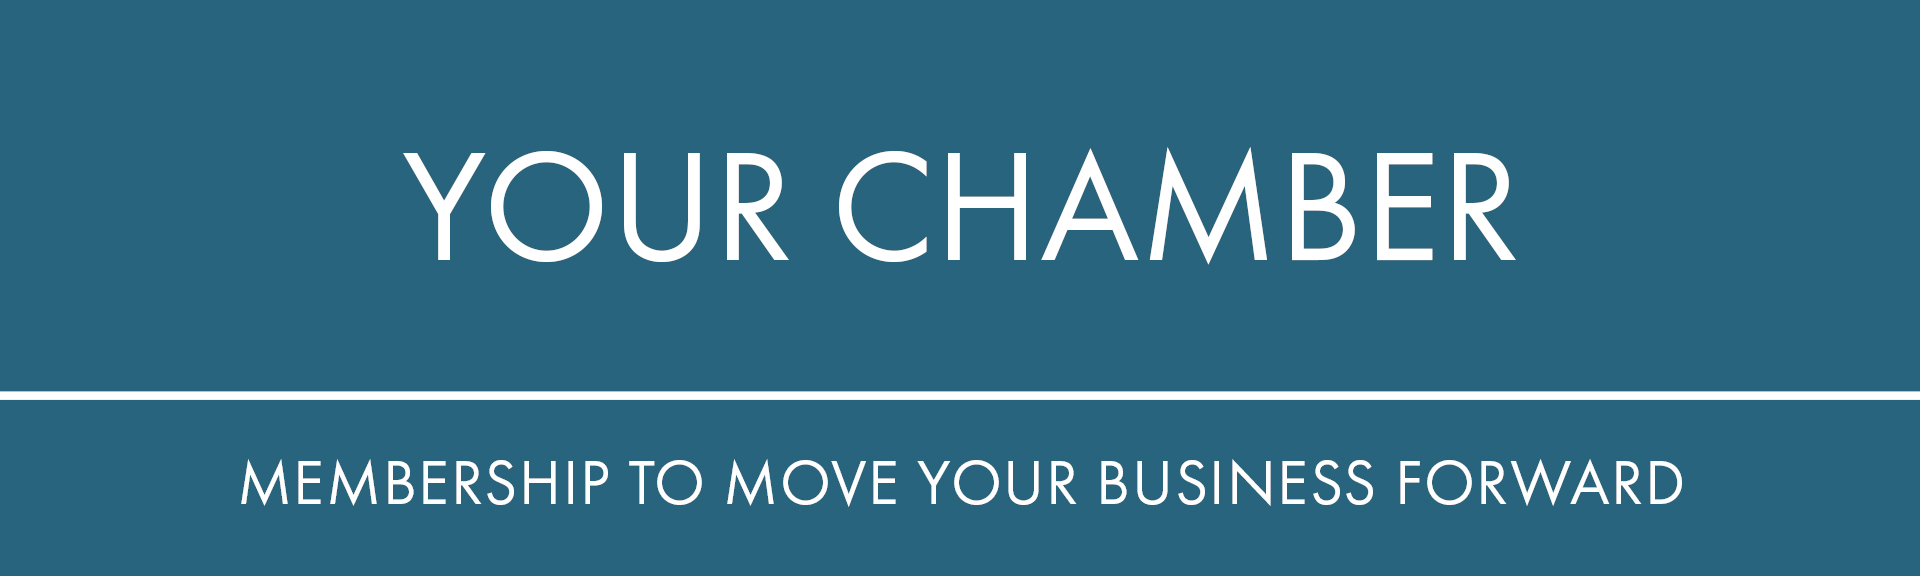 membership moving business forward move your chamber greater vancouver sw washington pnw